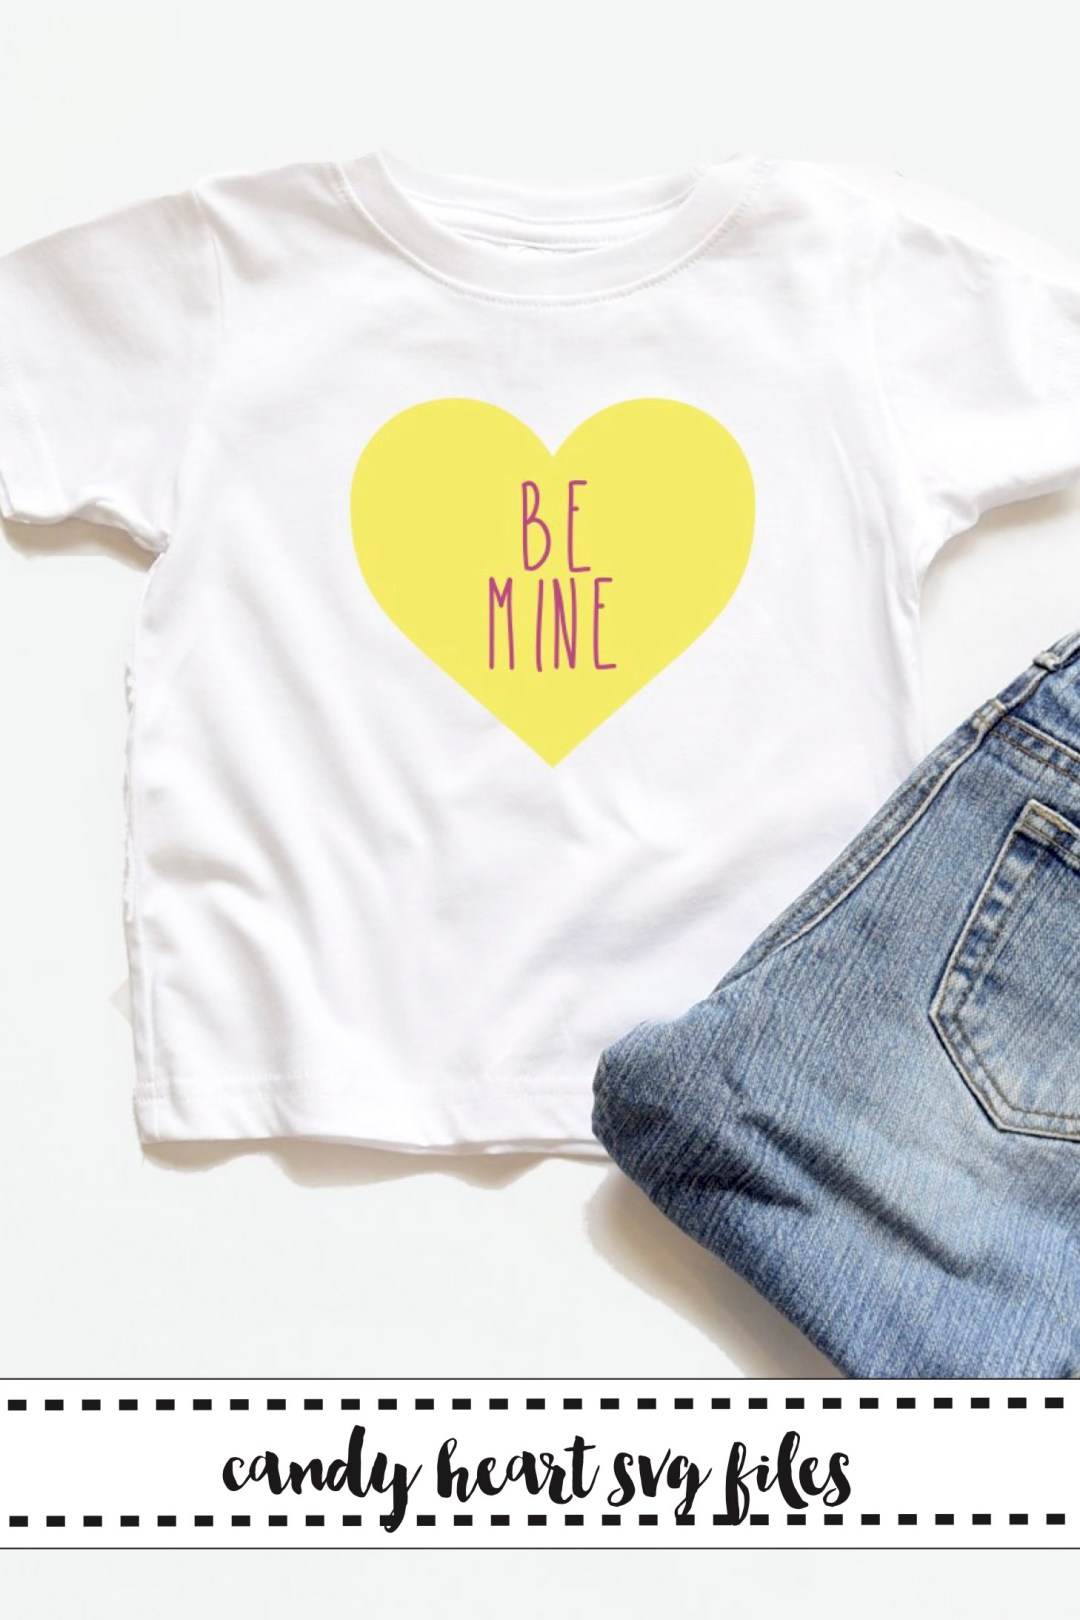 BE-MINE-Conversation-Heart-Shirt-Jeans